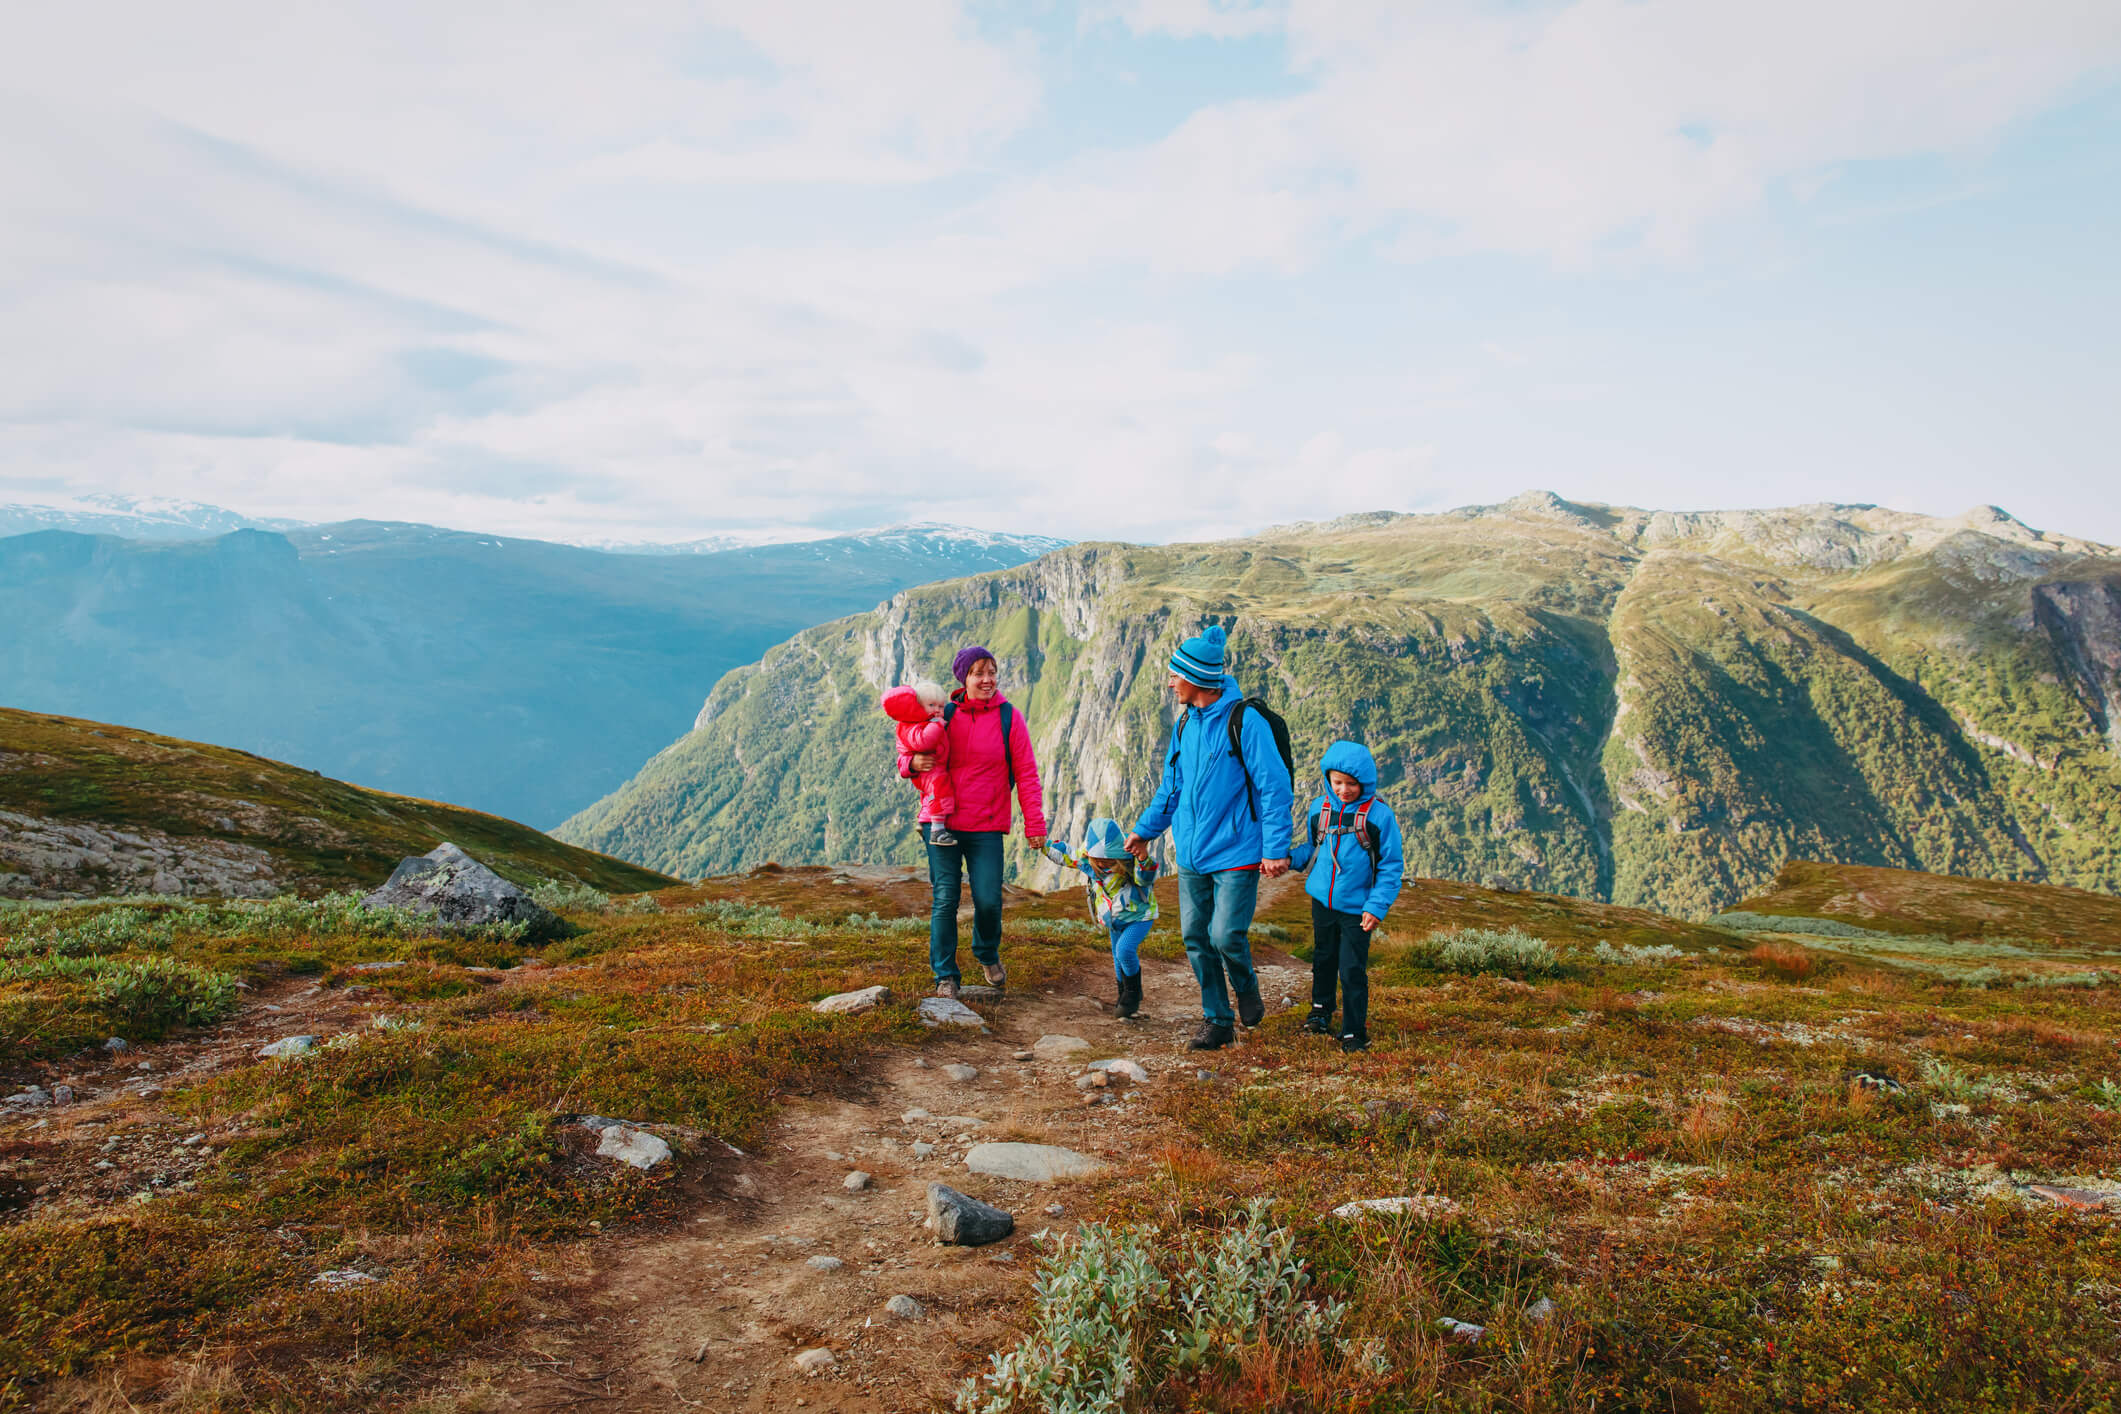 happy family with kids hiking in mountains, travel concept